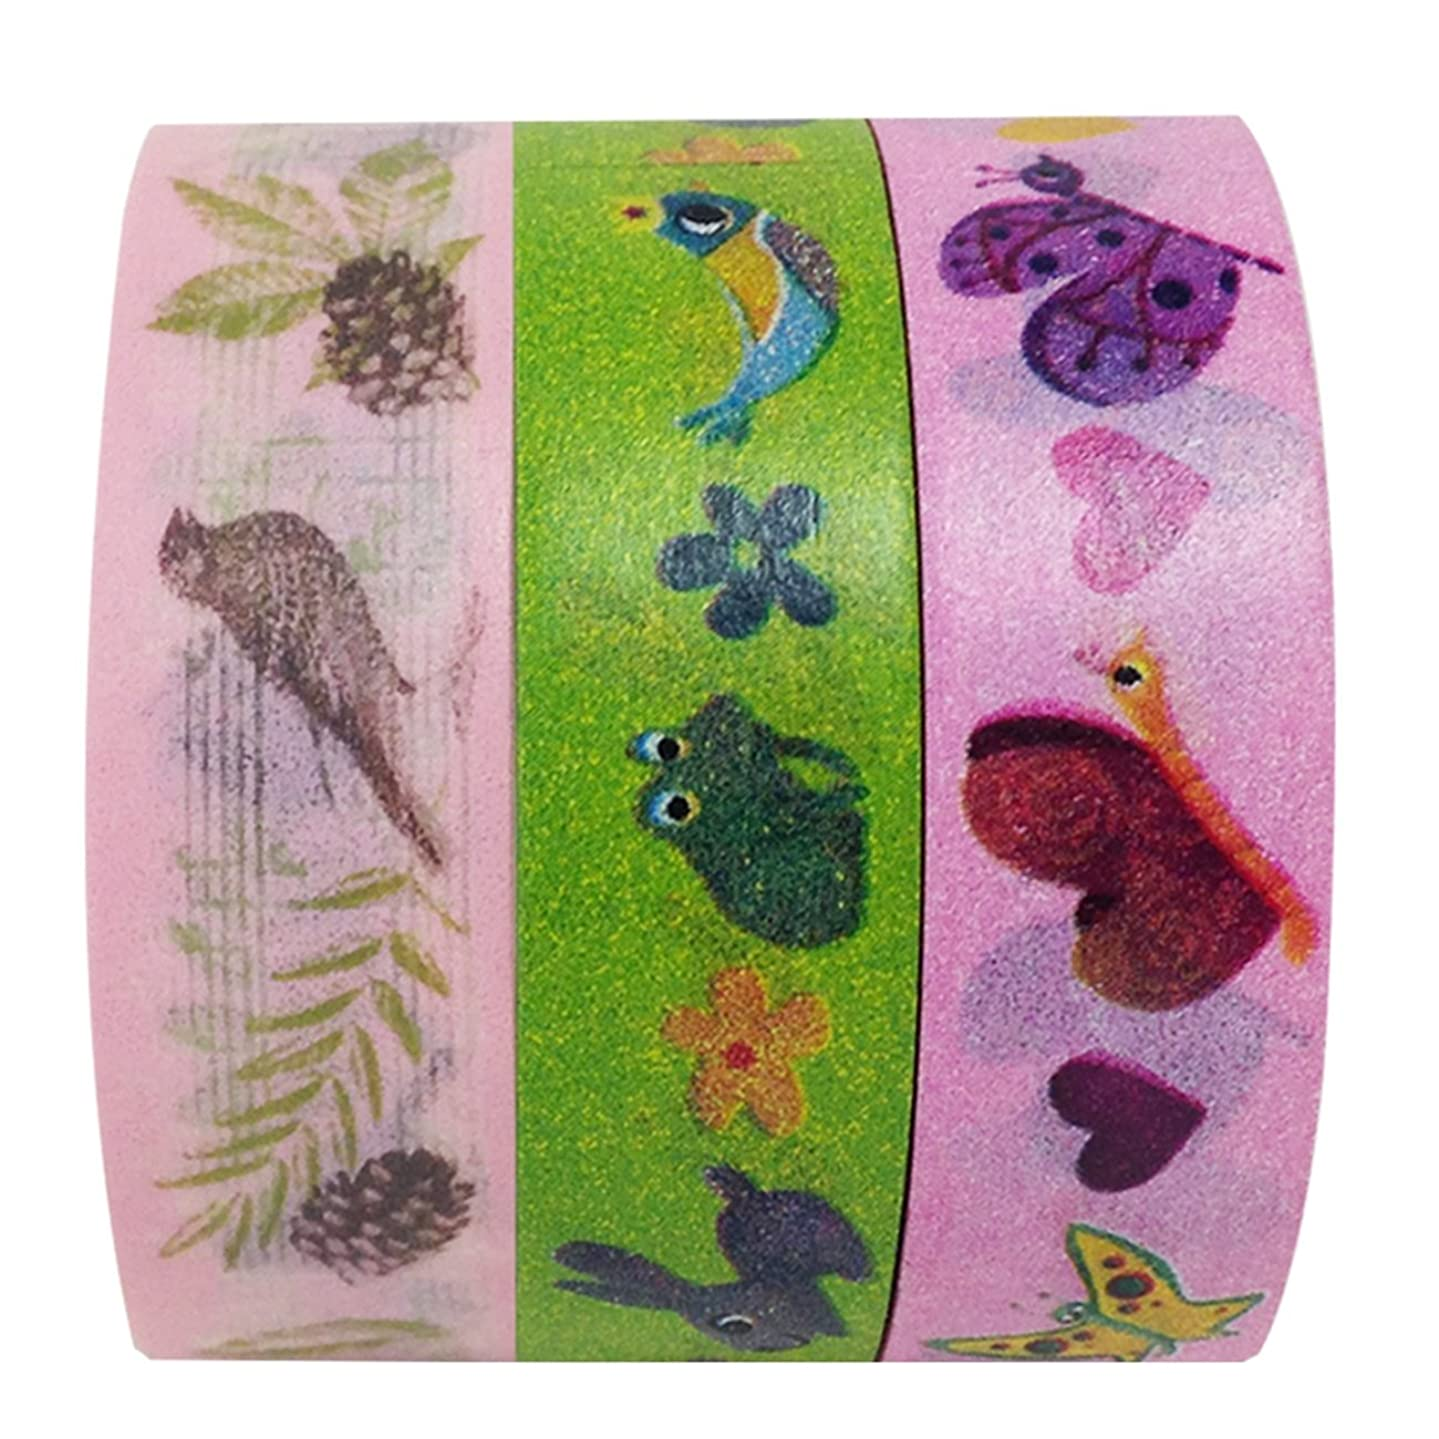 Wrapables Nature Buddies Washi Masking Tape, 10M by 15mm, Set of 3